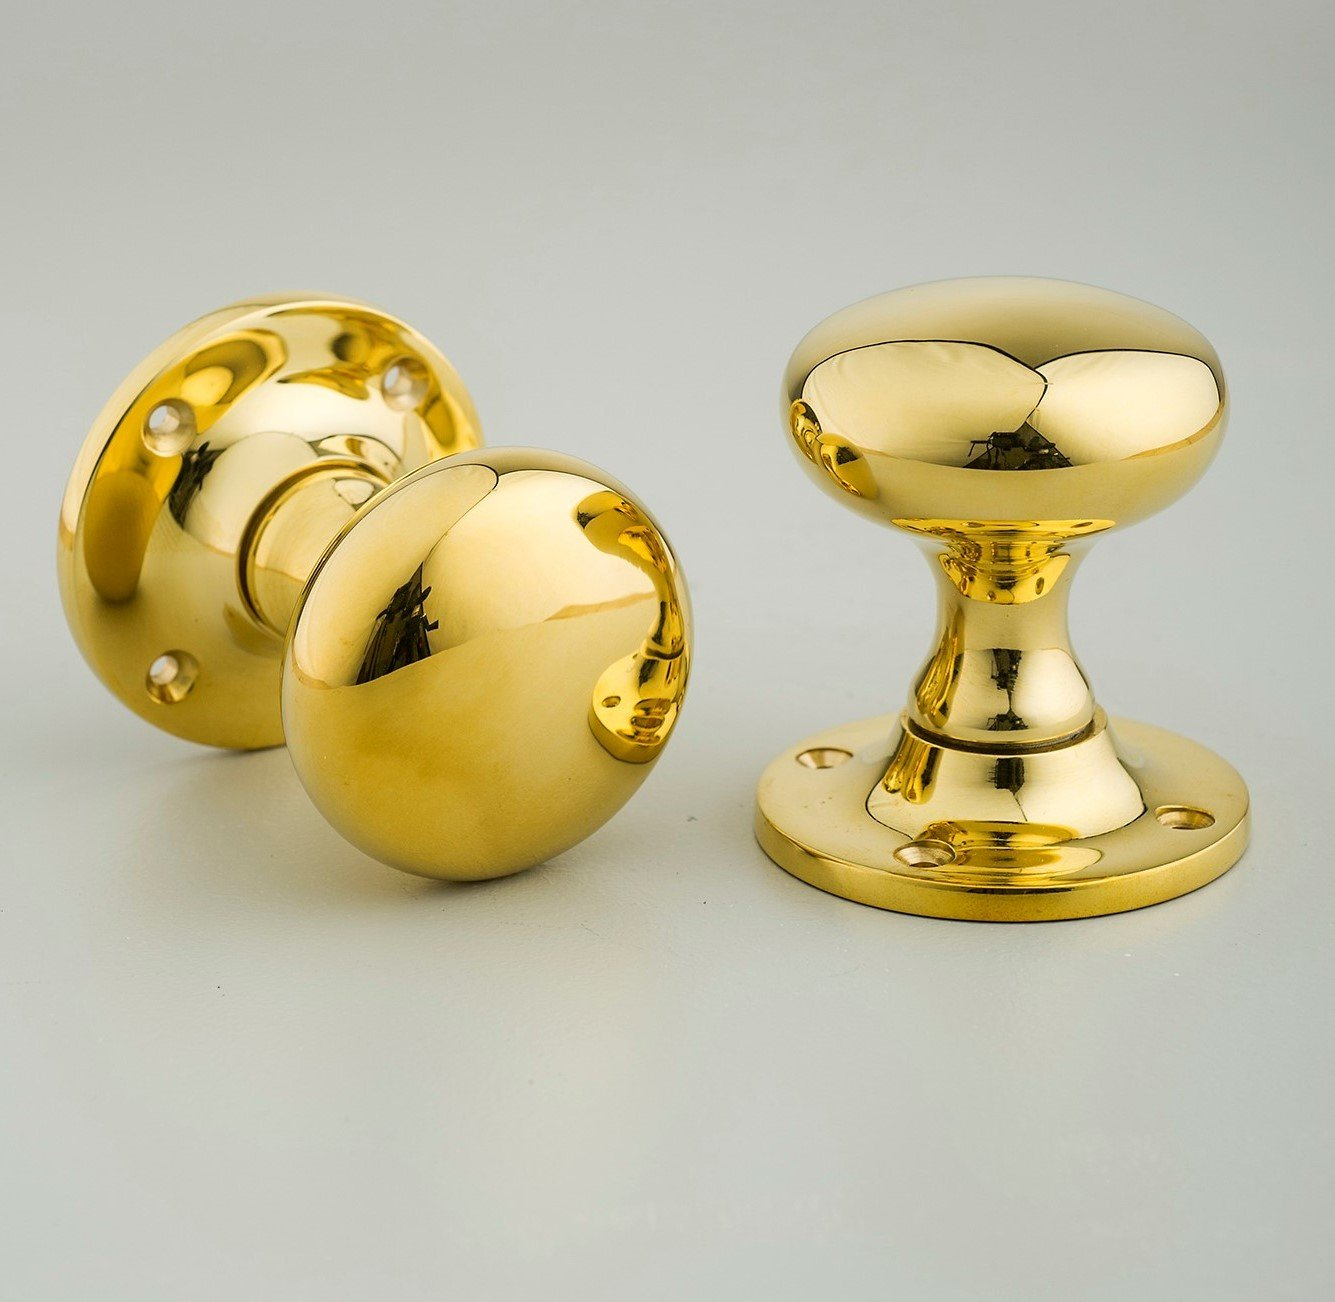 Cushion Door Knobs (Pair) - Brass